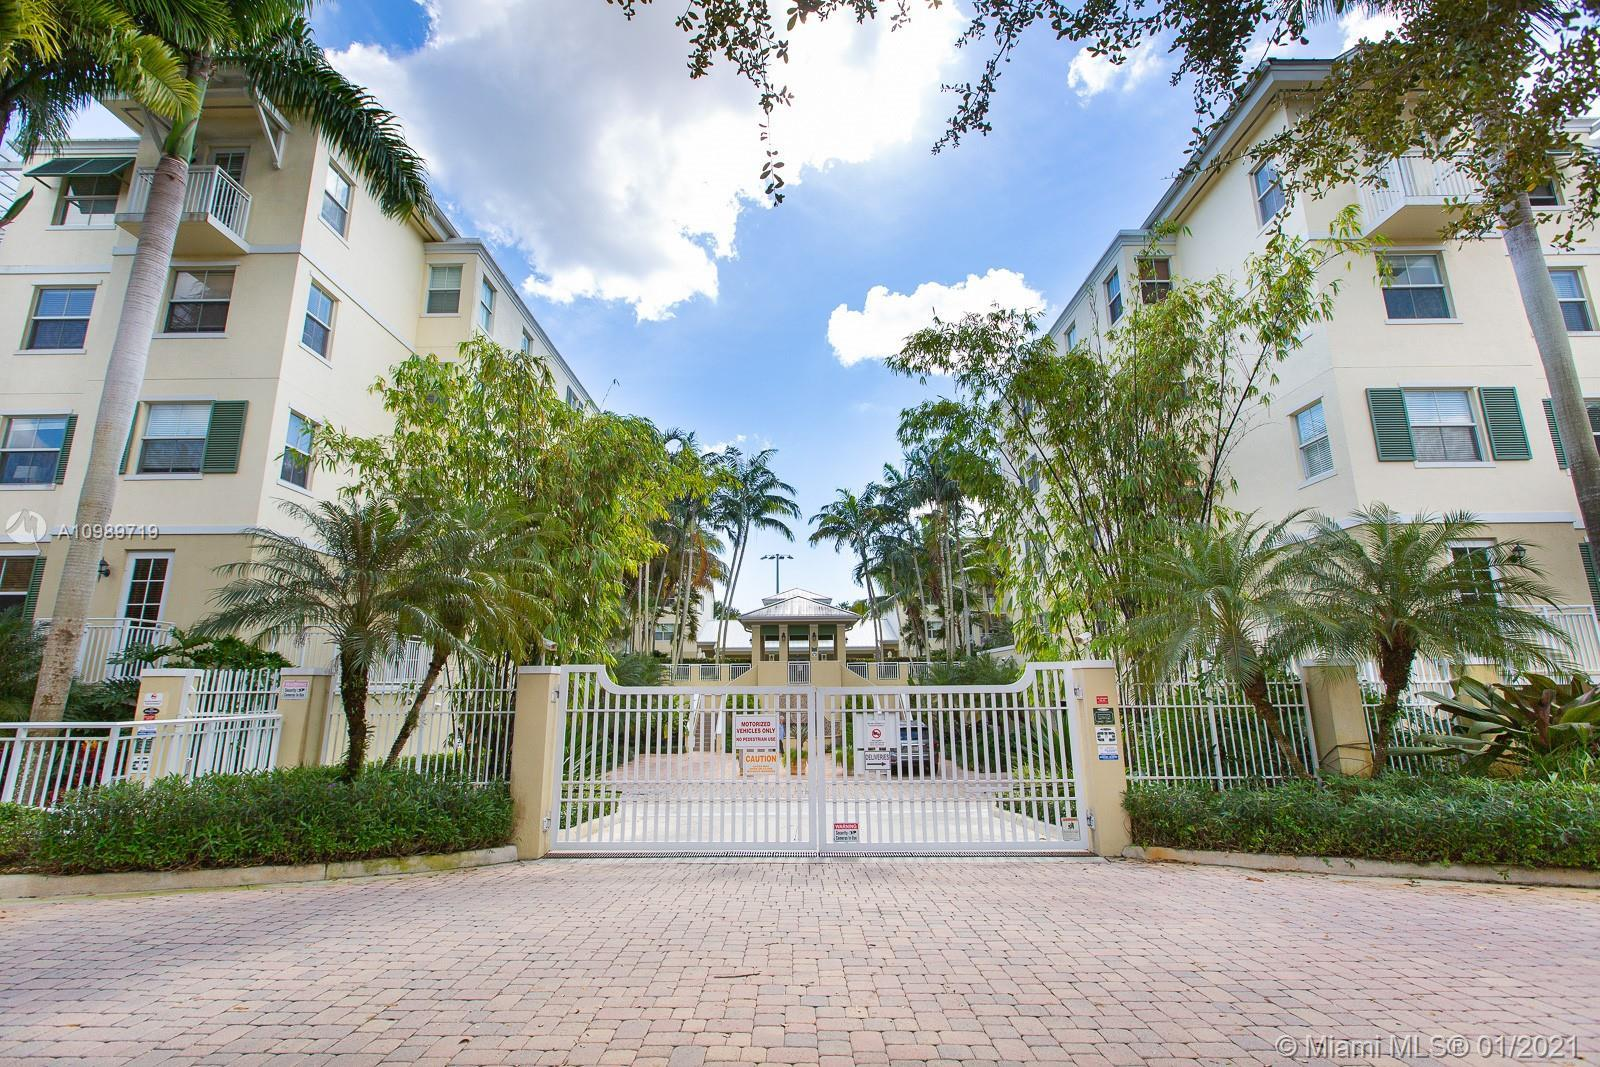 Ideally located Reserve one-story 4 bedroom unit overlooking a park and greenery from the very priva